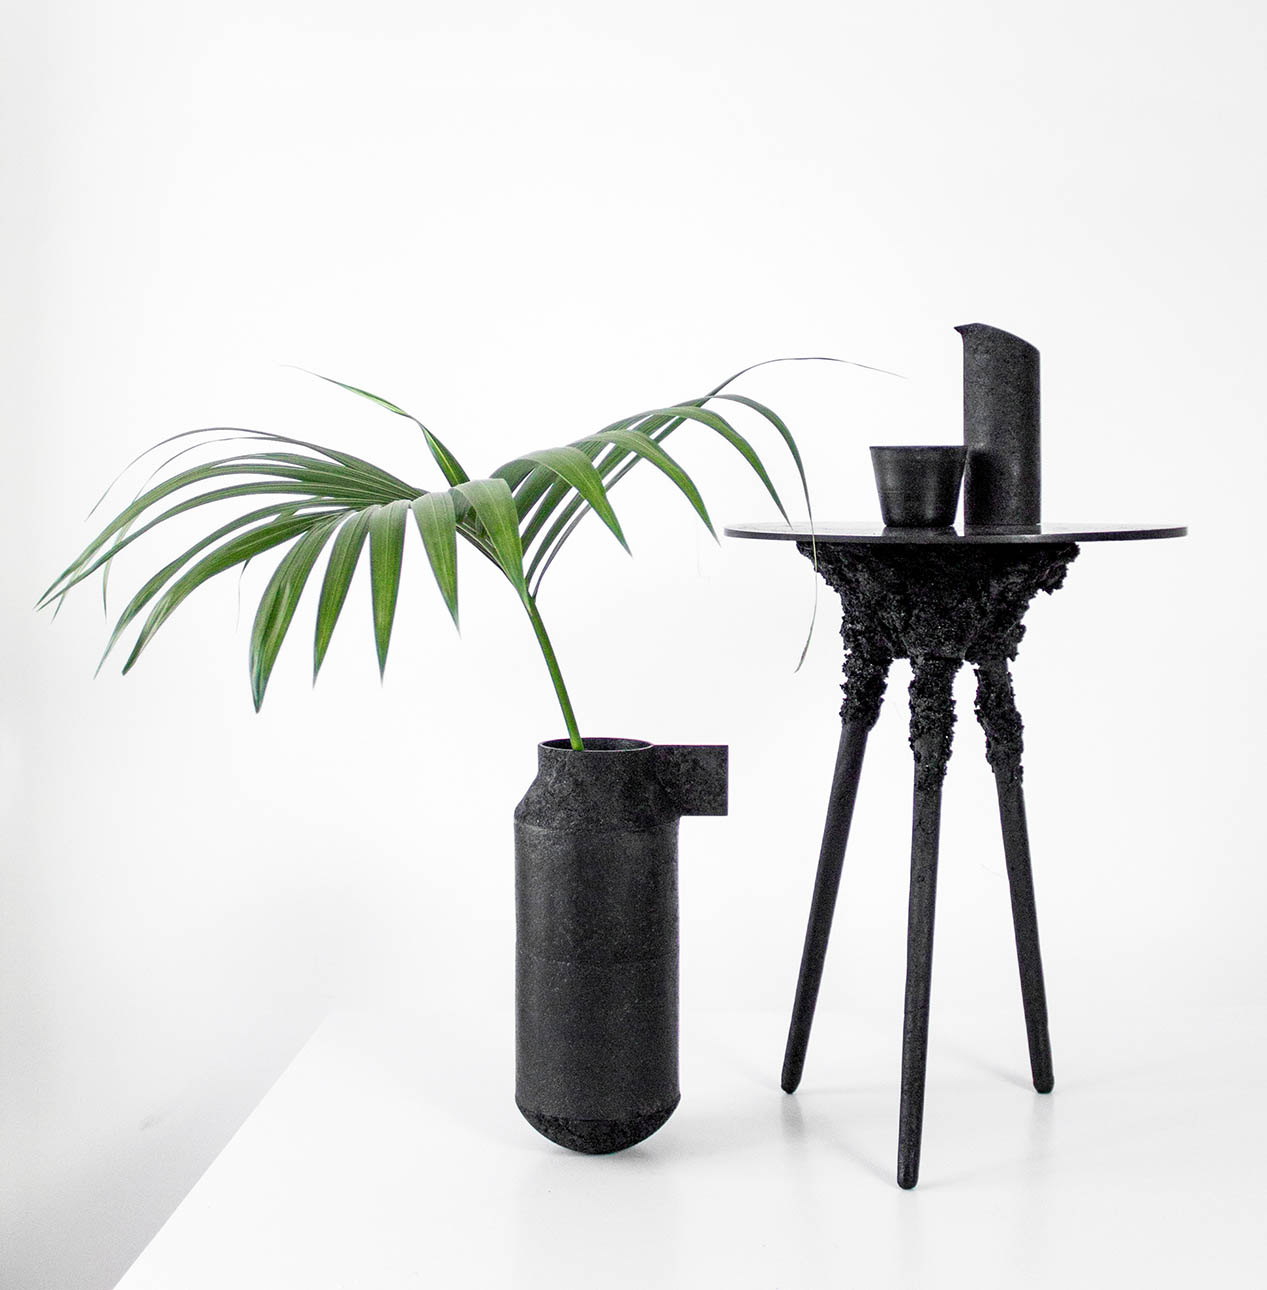 Vessels, and table with threaded, detachable legs– The Forgotten Collection  by Lapatsch|Unger, Second edition